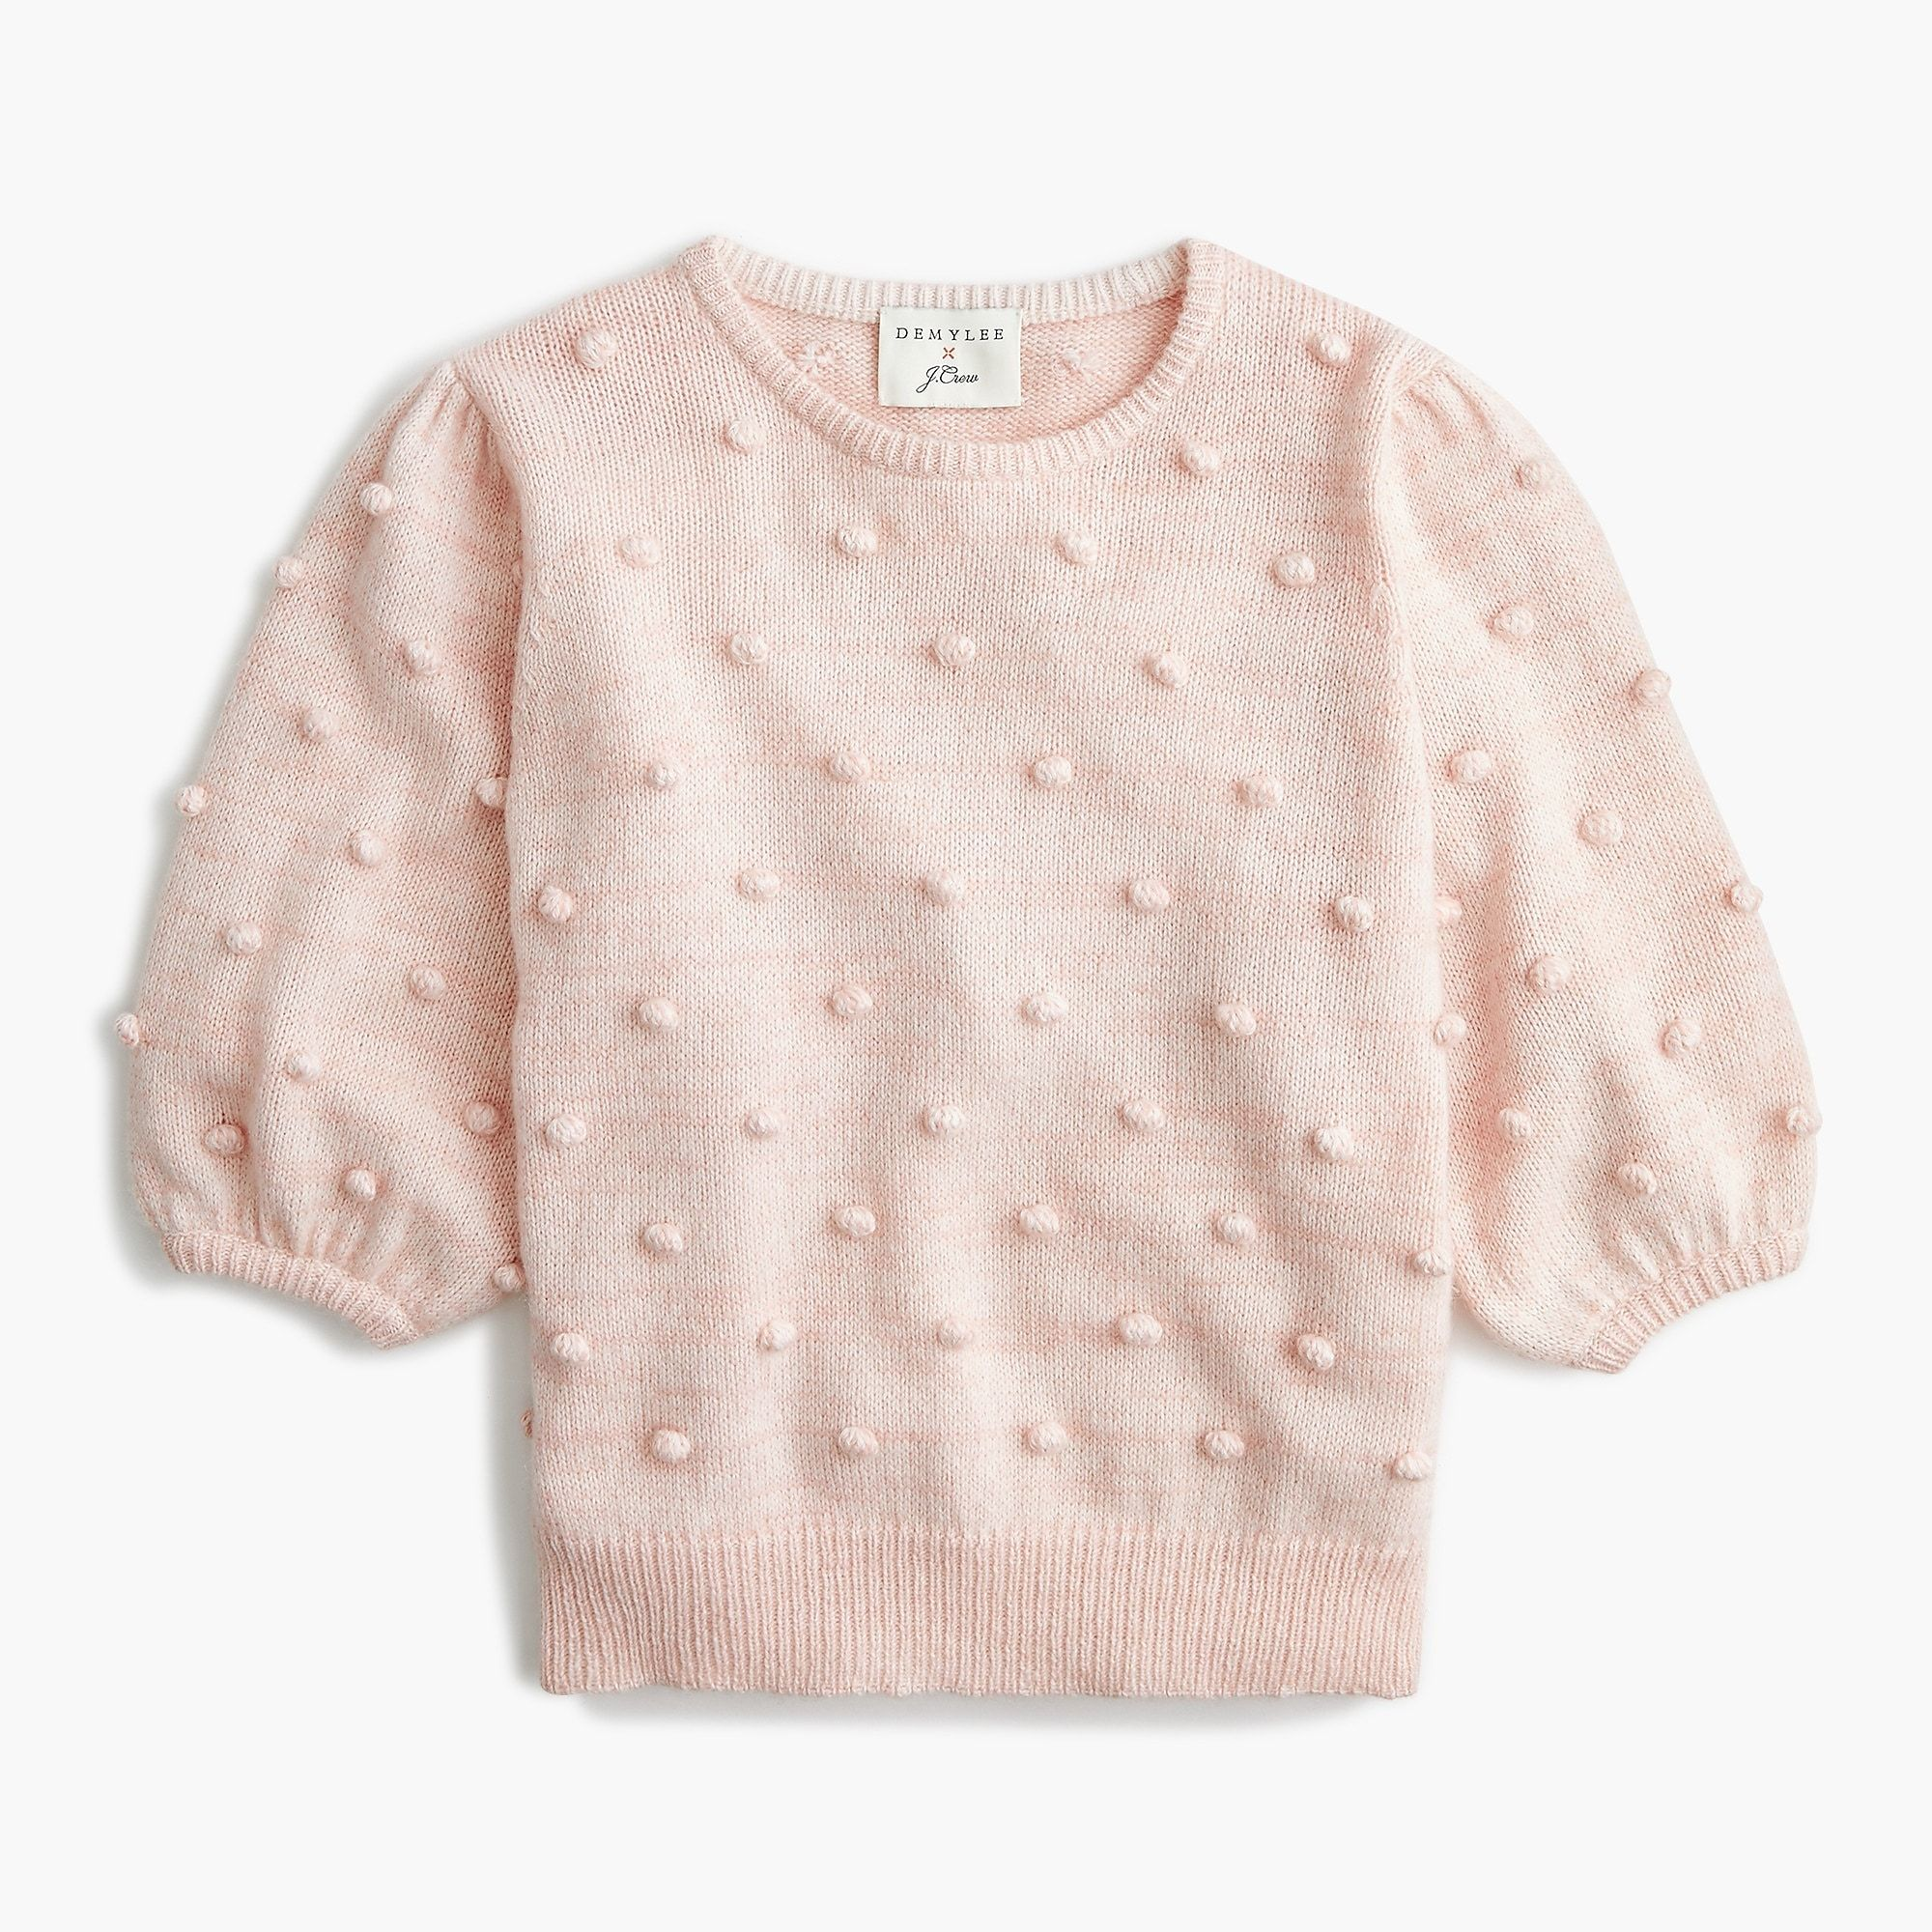 Shop J.Crew for the DEMYLEE® X J.Crew puff sleeve pompom